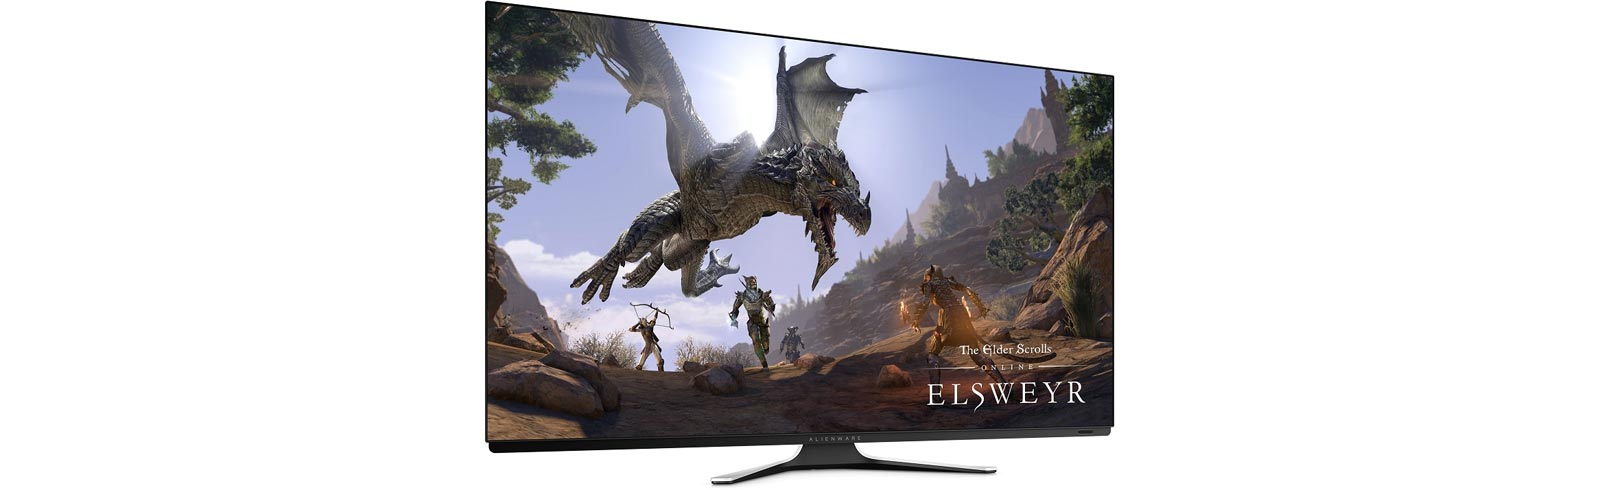 "Dell will showcase four gaming monitors at Gamescom 2019, includuing the 55"" OLED AW5520QF monitor"